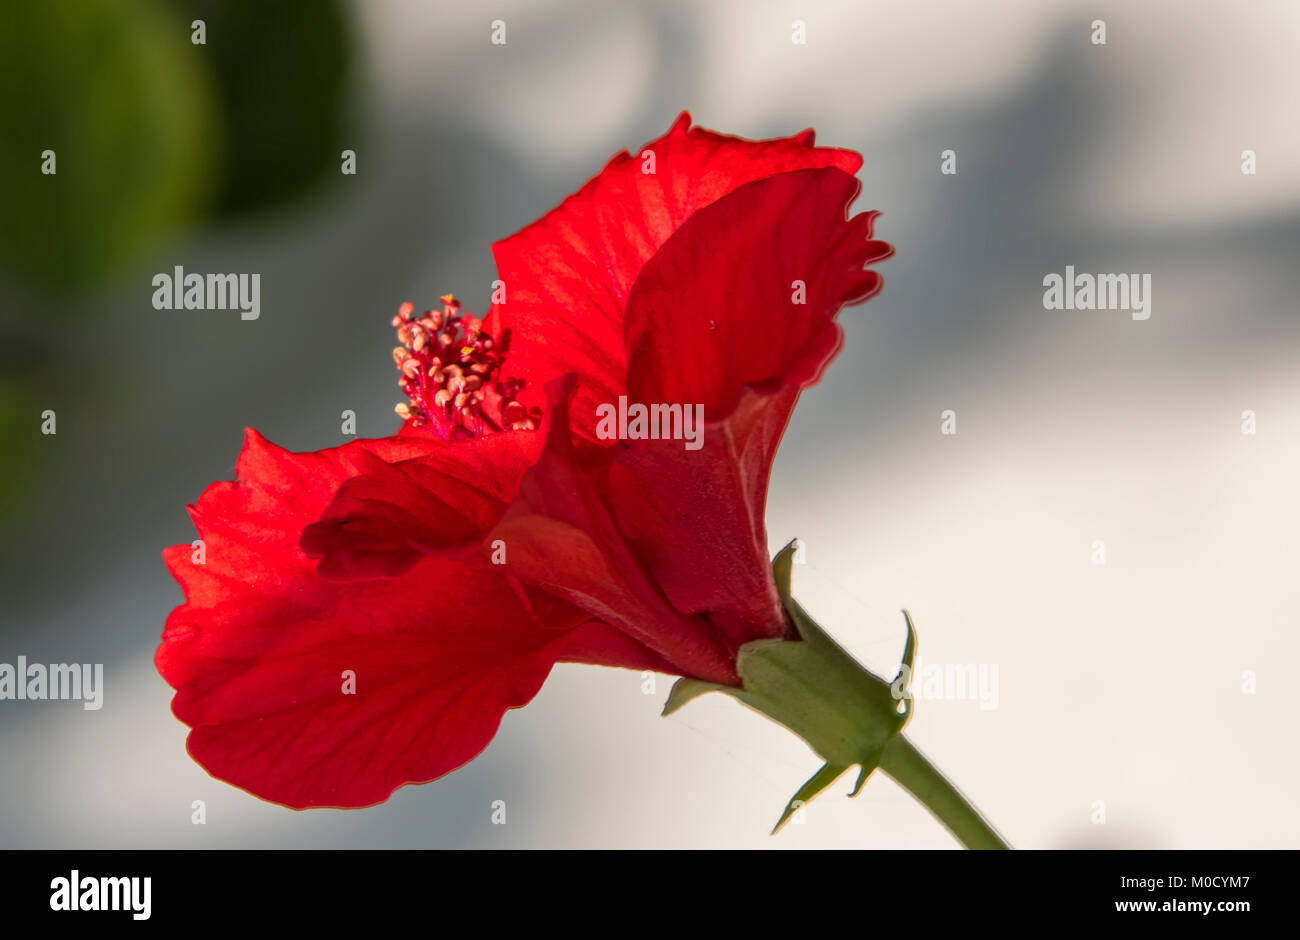 Red hibiscus flower flowers concept stock photos red hibiscus red hibiscus flower in hdr stock image izmirmasajfo